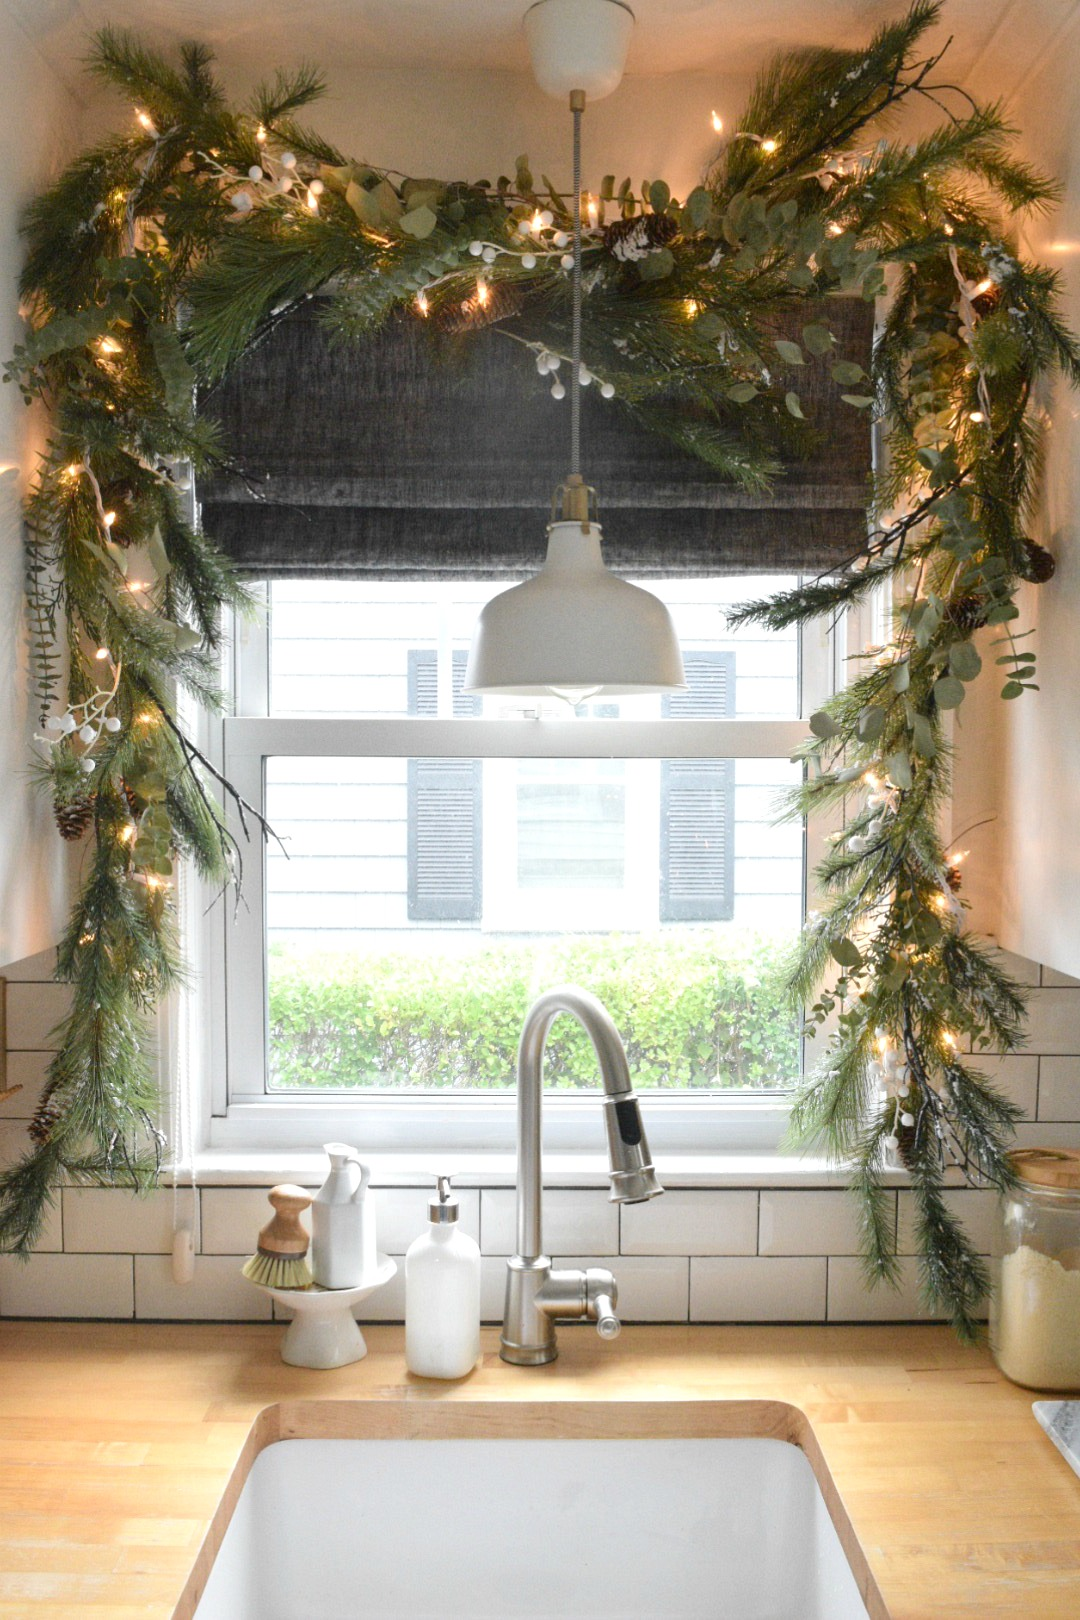 Christmas In Our Small Kitchen Started With Christmas Garland Nesting With Grace